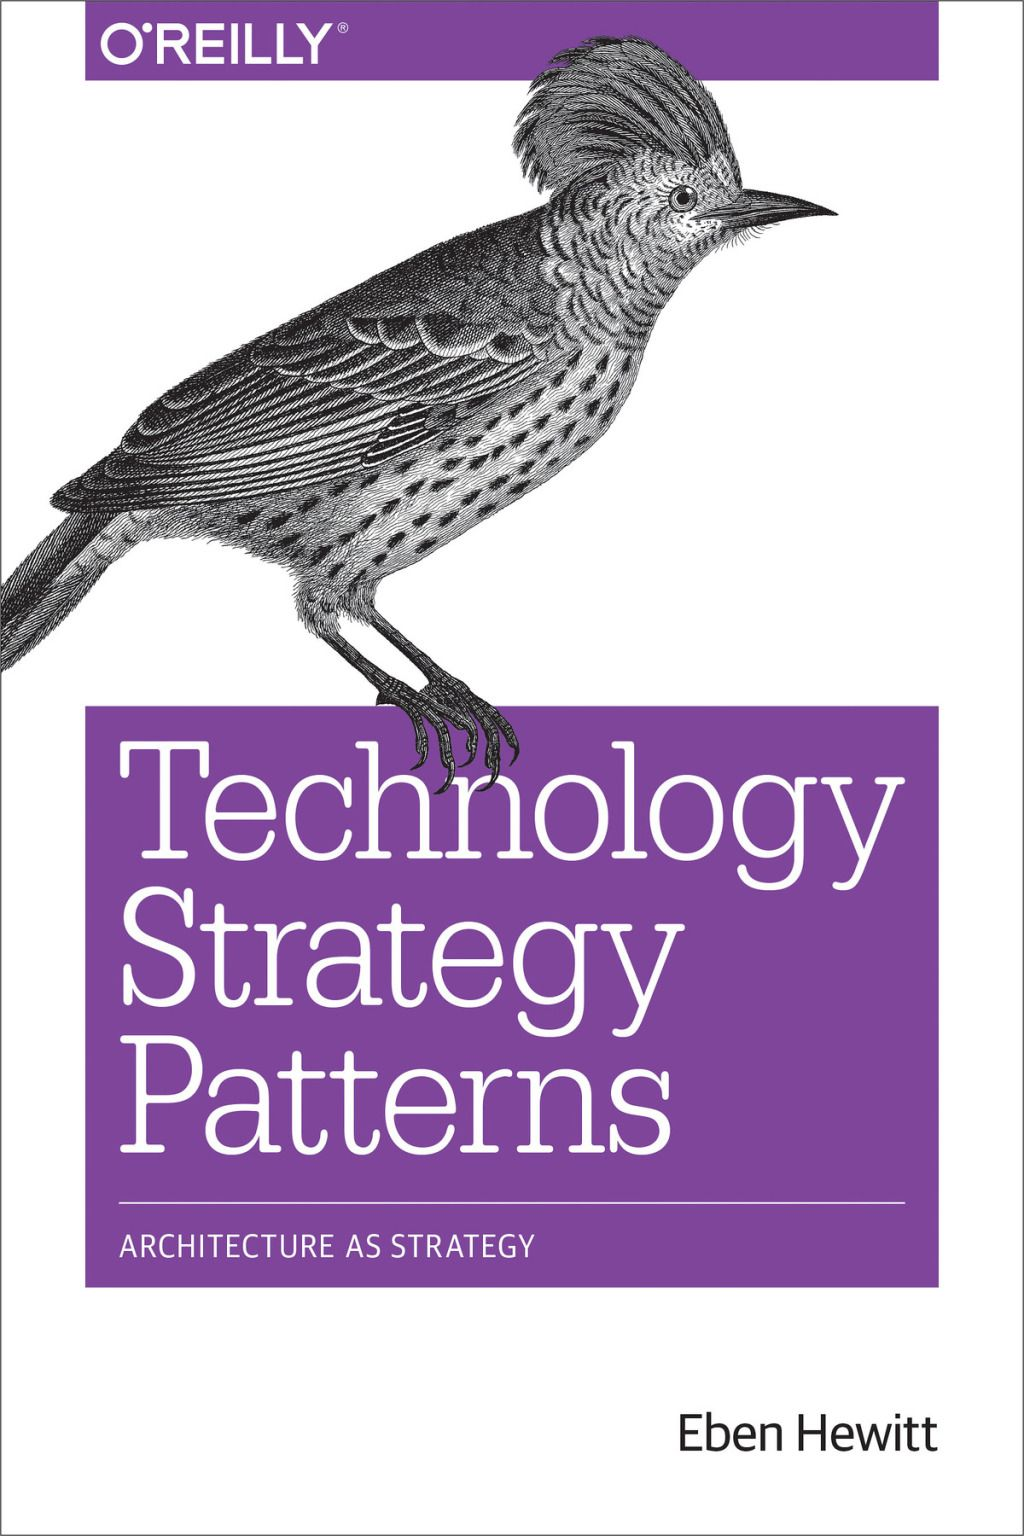 Technology Strategy Patterns Ebook With Images Reading